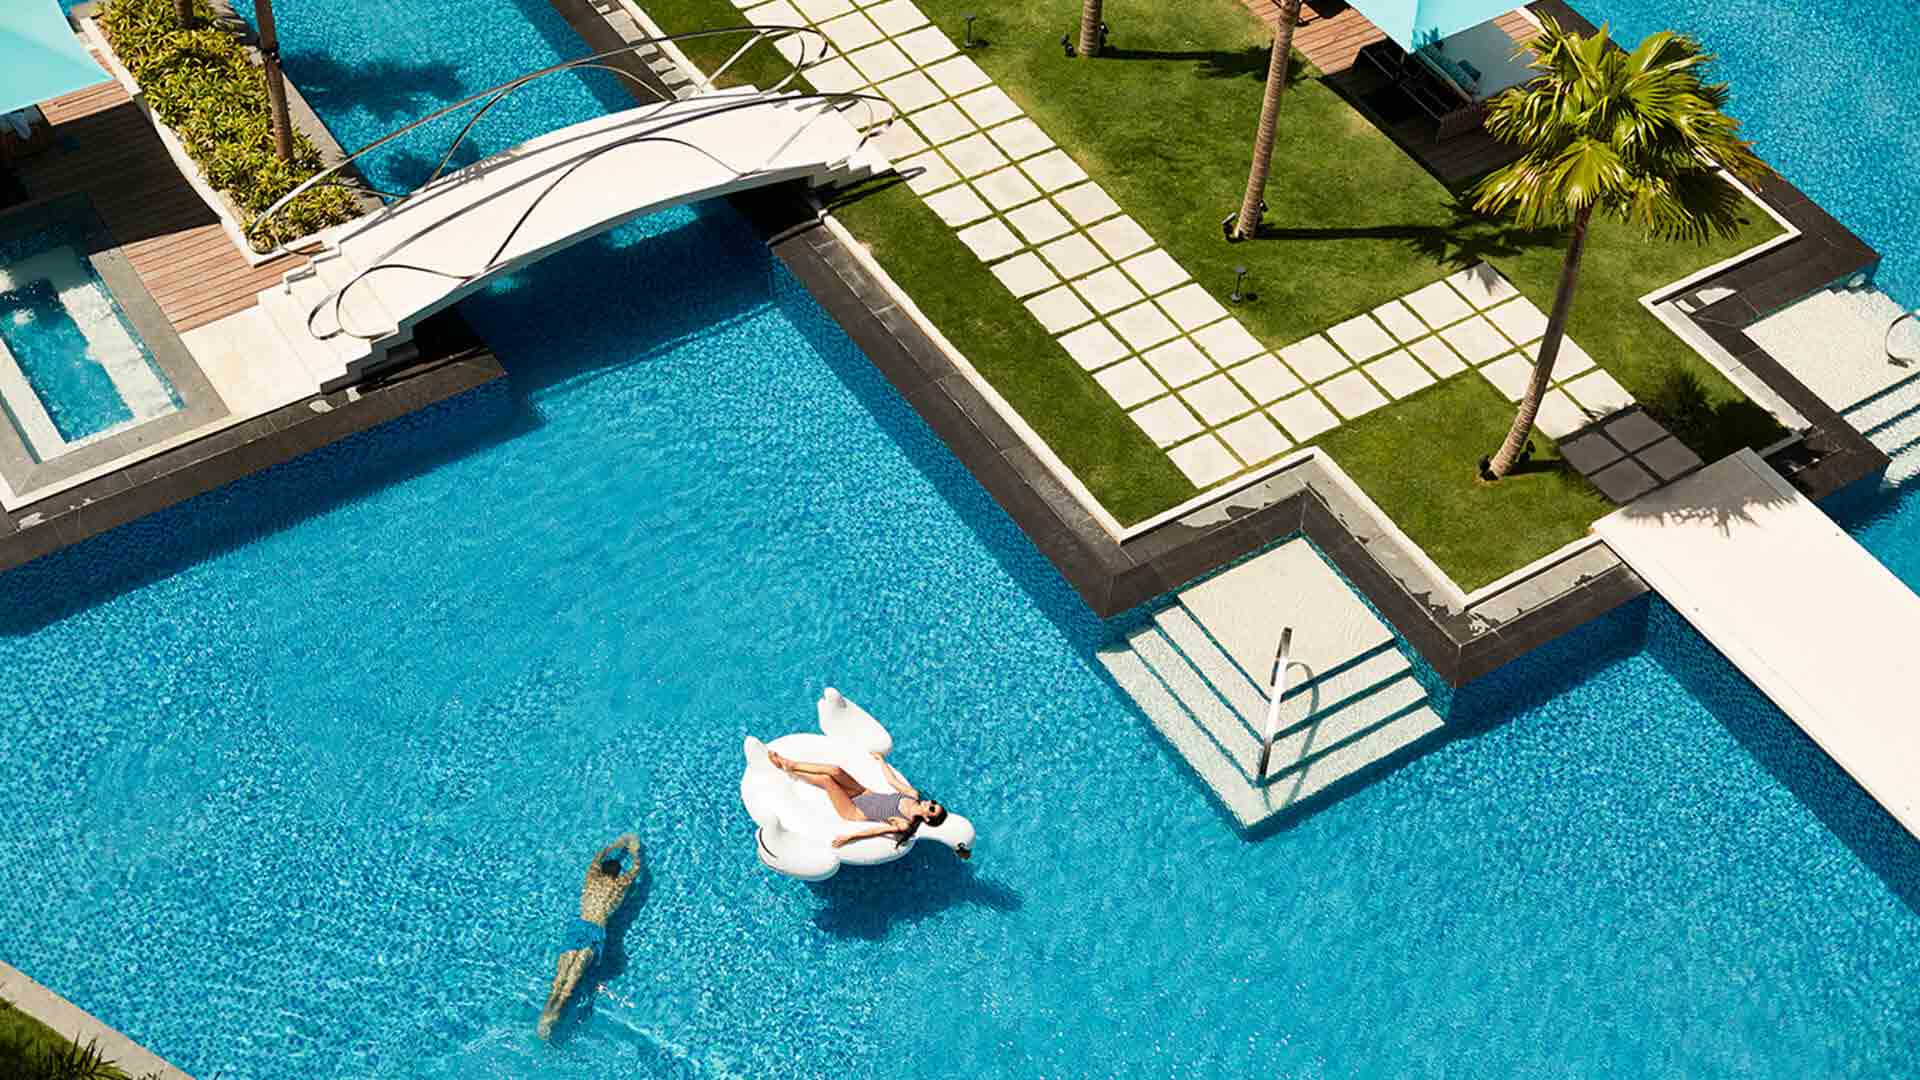 Enjoy the pool area of The Lind